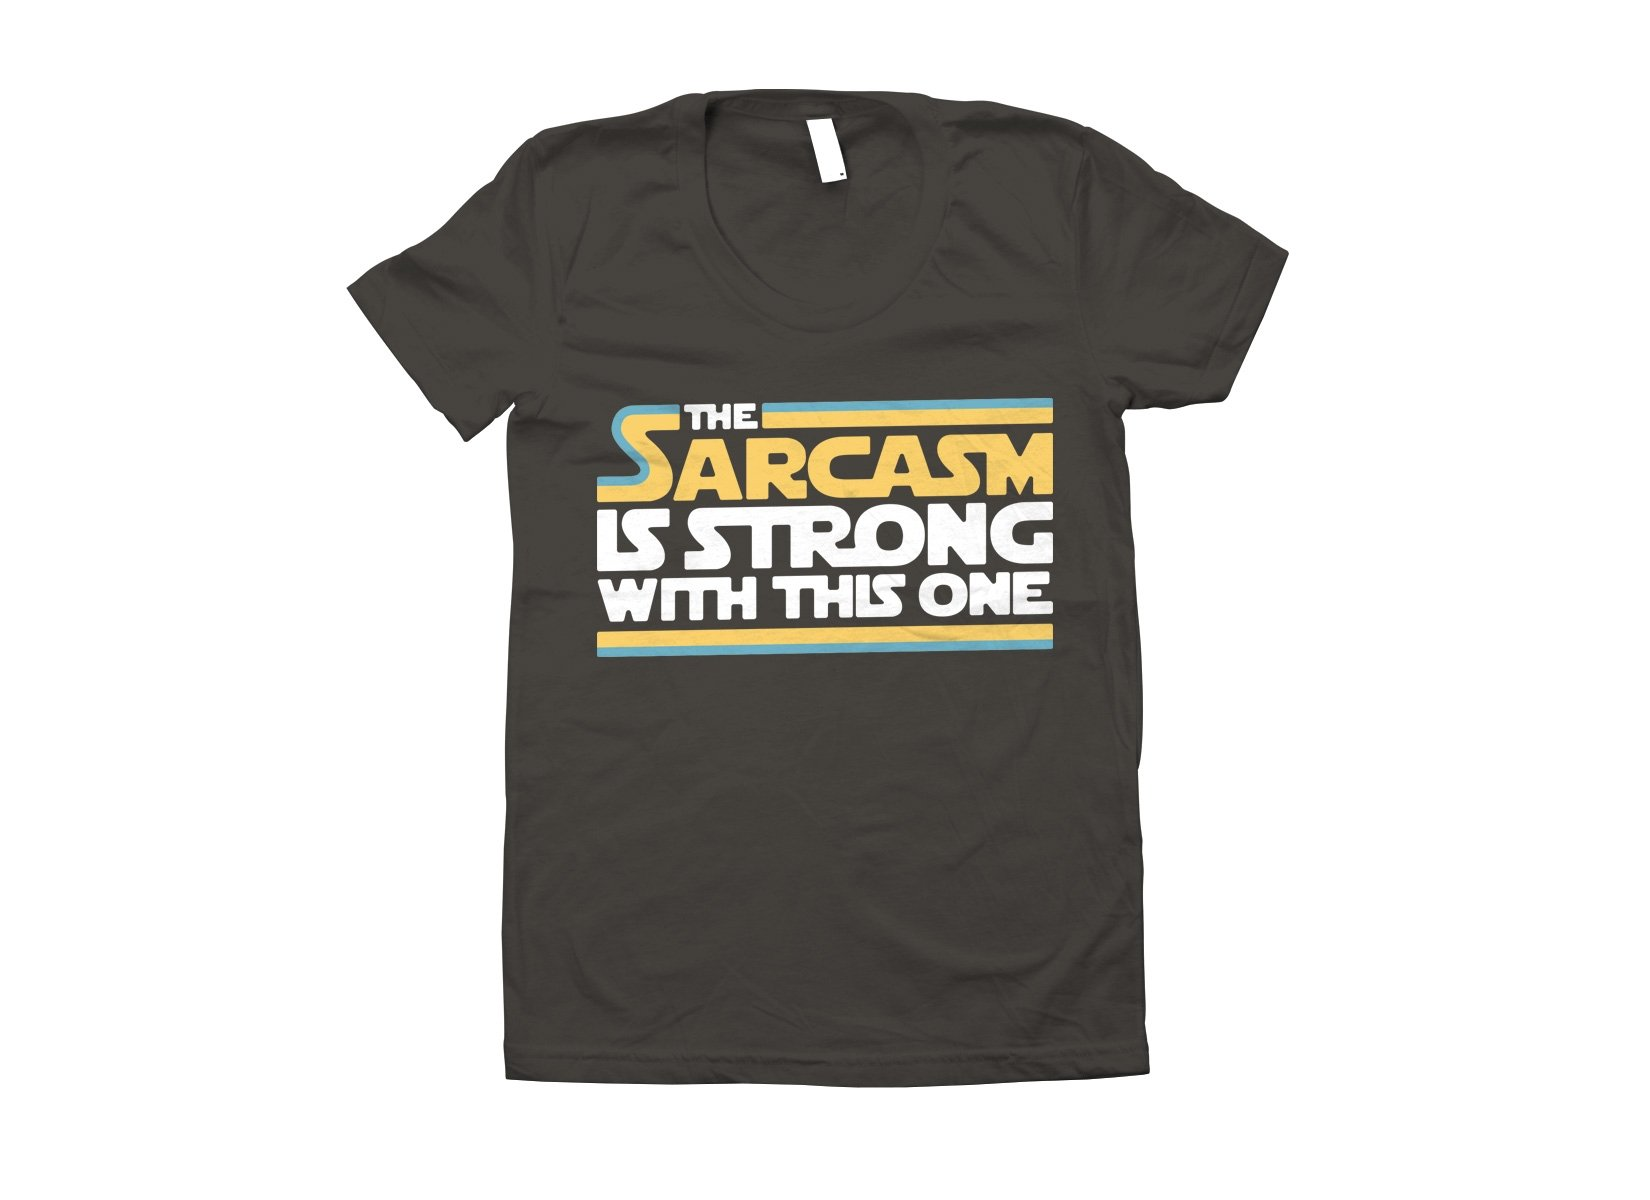 The Sarcasm Is Strong With This One on Juniors T-Shirt